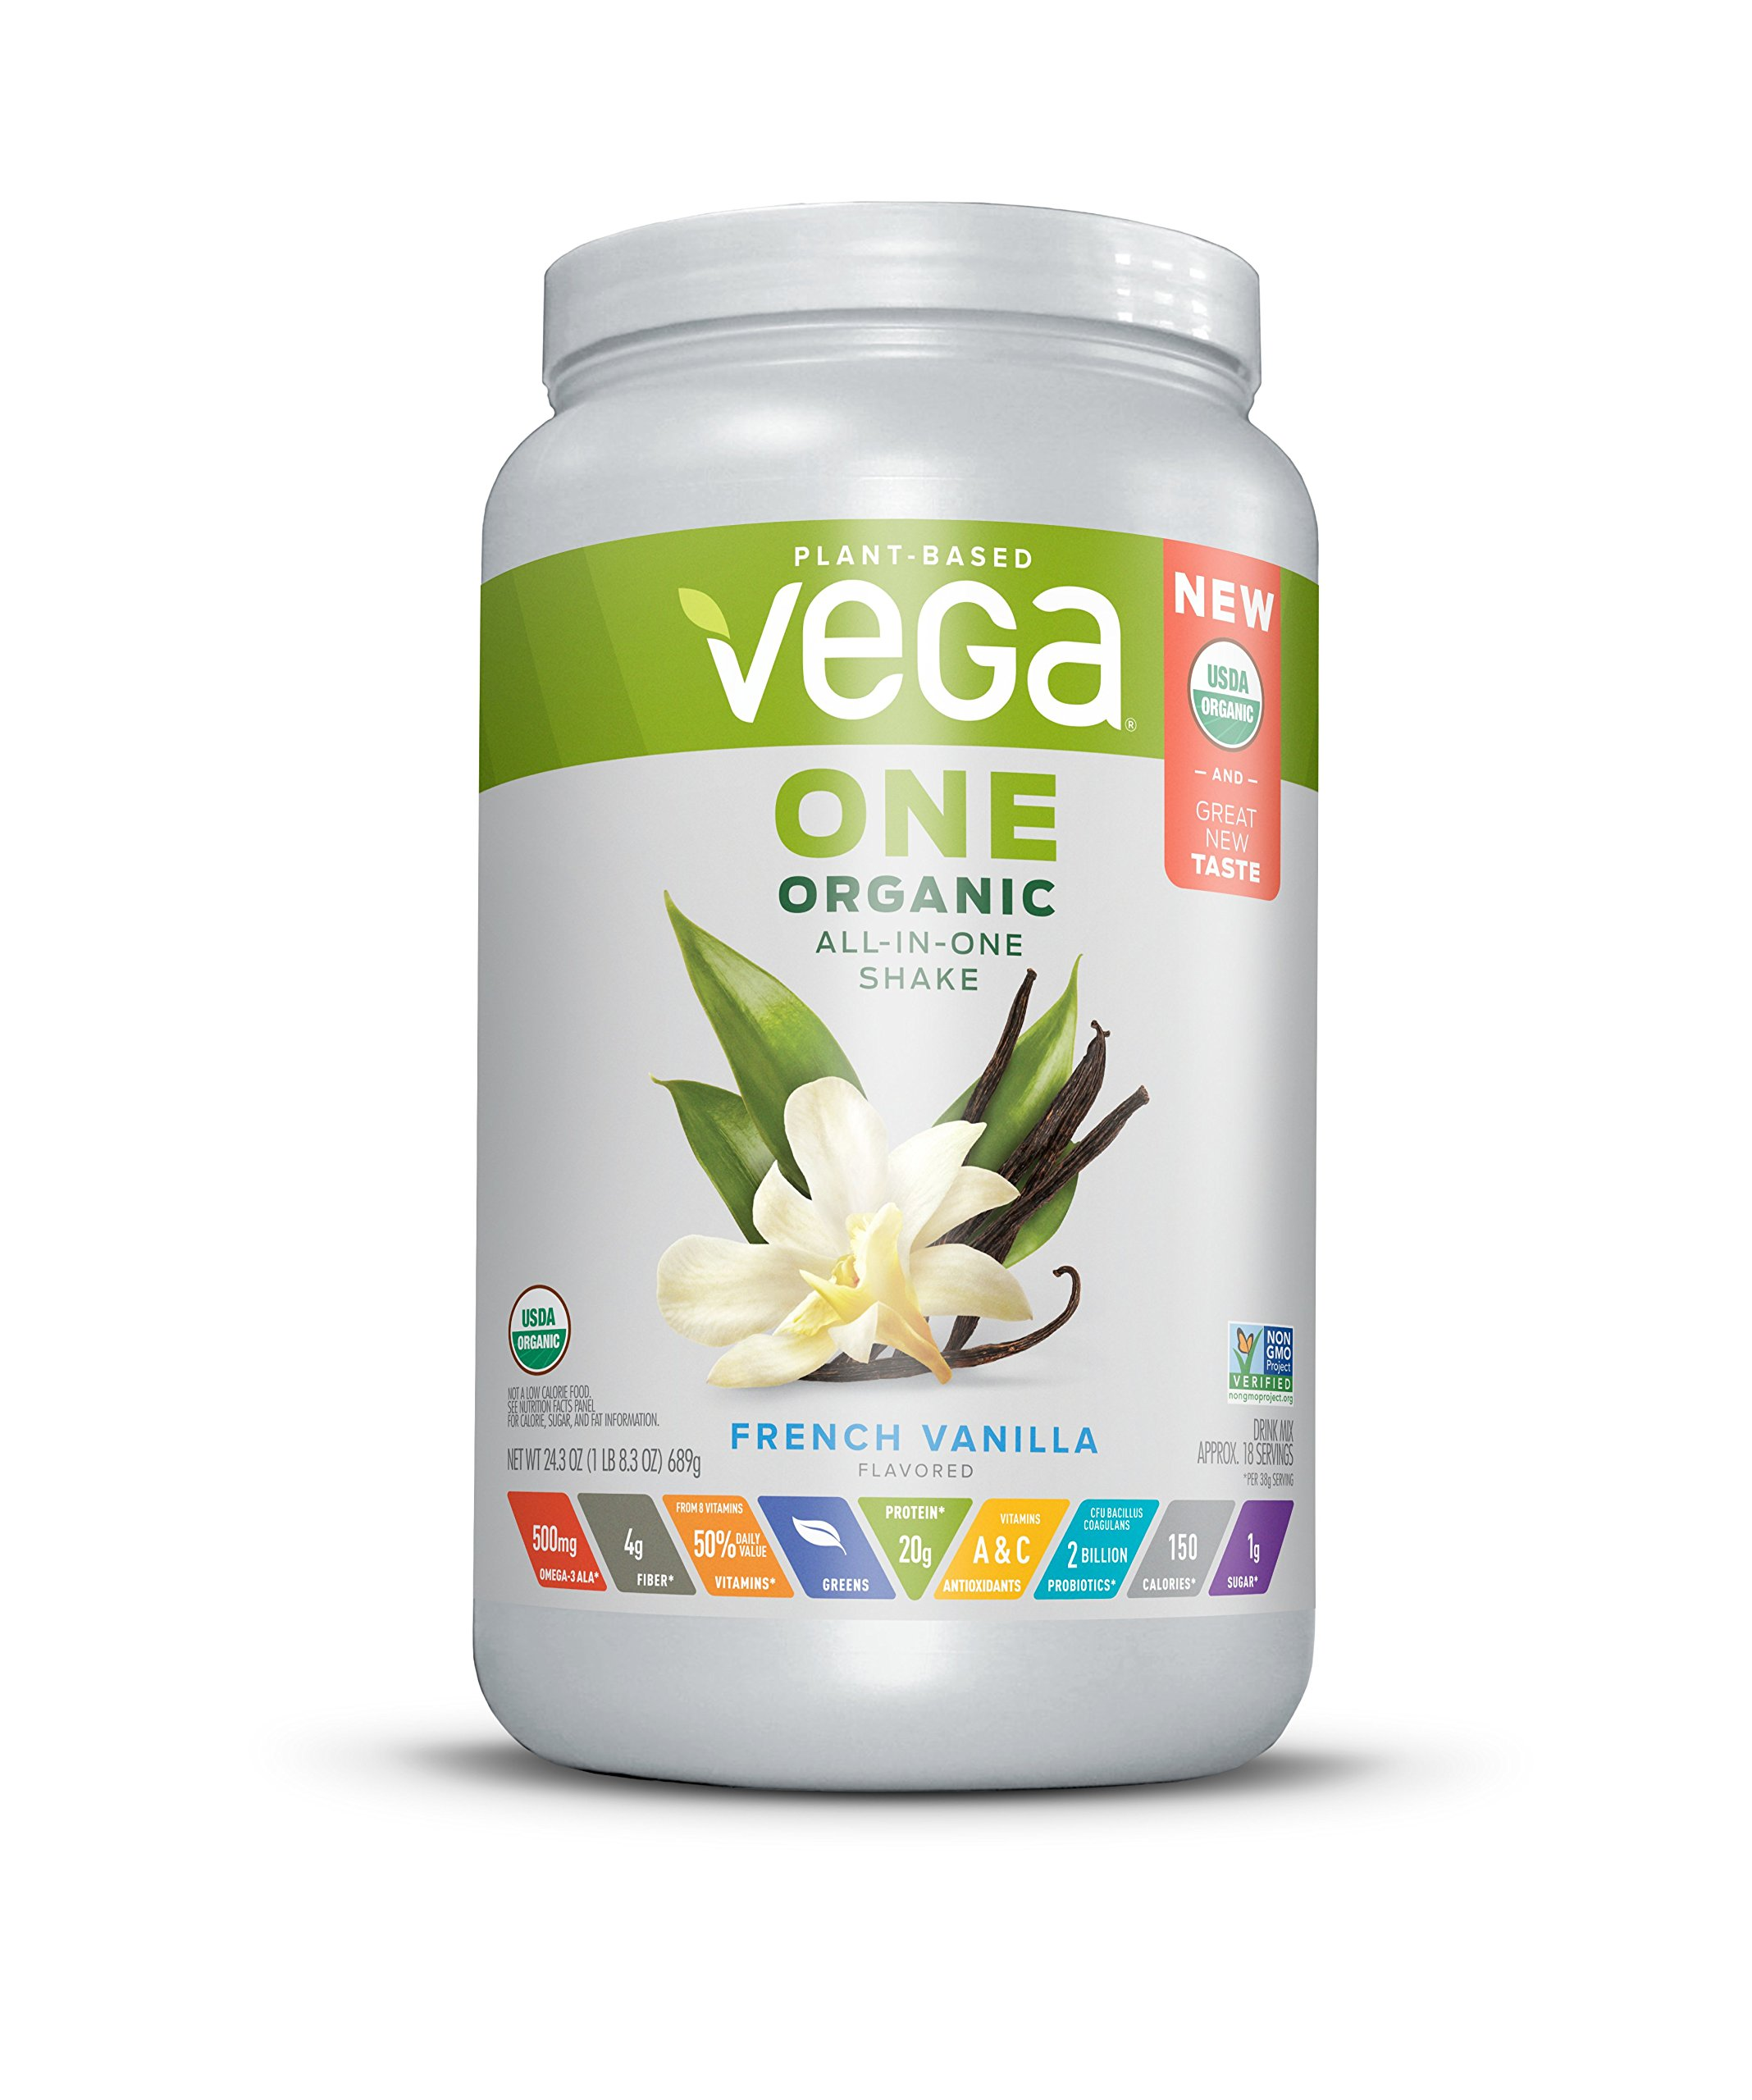 Vega One Organic All-in-One Shake French Vanilla (18 Servings) - Plant Based Vegan Protein Powder, Non Dairy, Gluten Free, Non GMO, 24.3 Ounce (Pack of 1) by VEGA